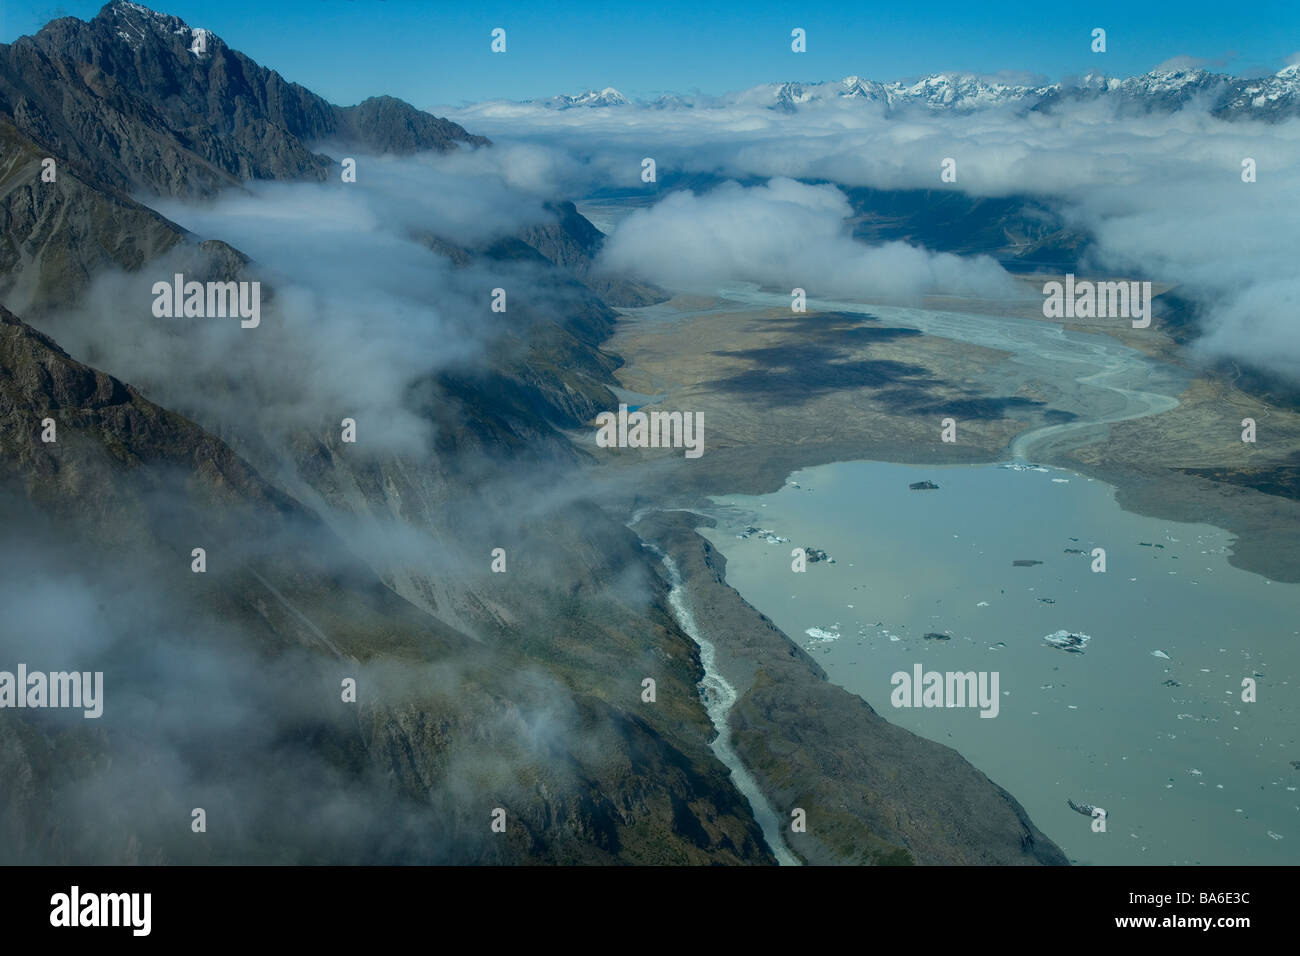 Hooker Glacier Lake Mount Cook National Park New Zealand - Stock Image